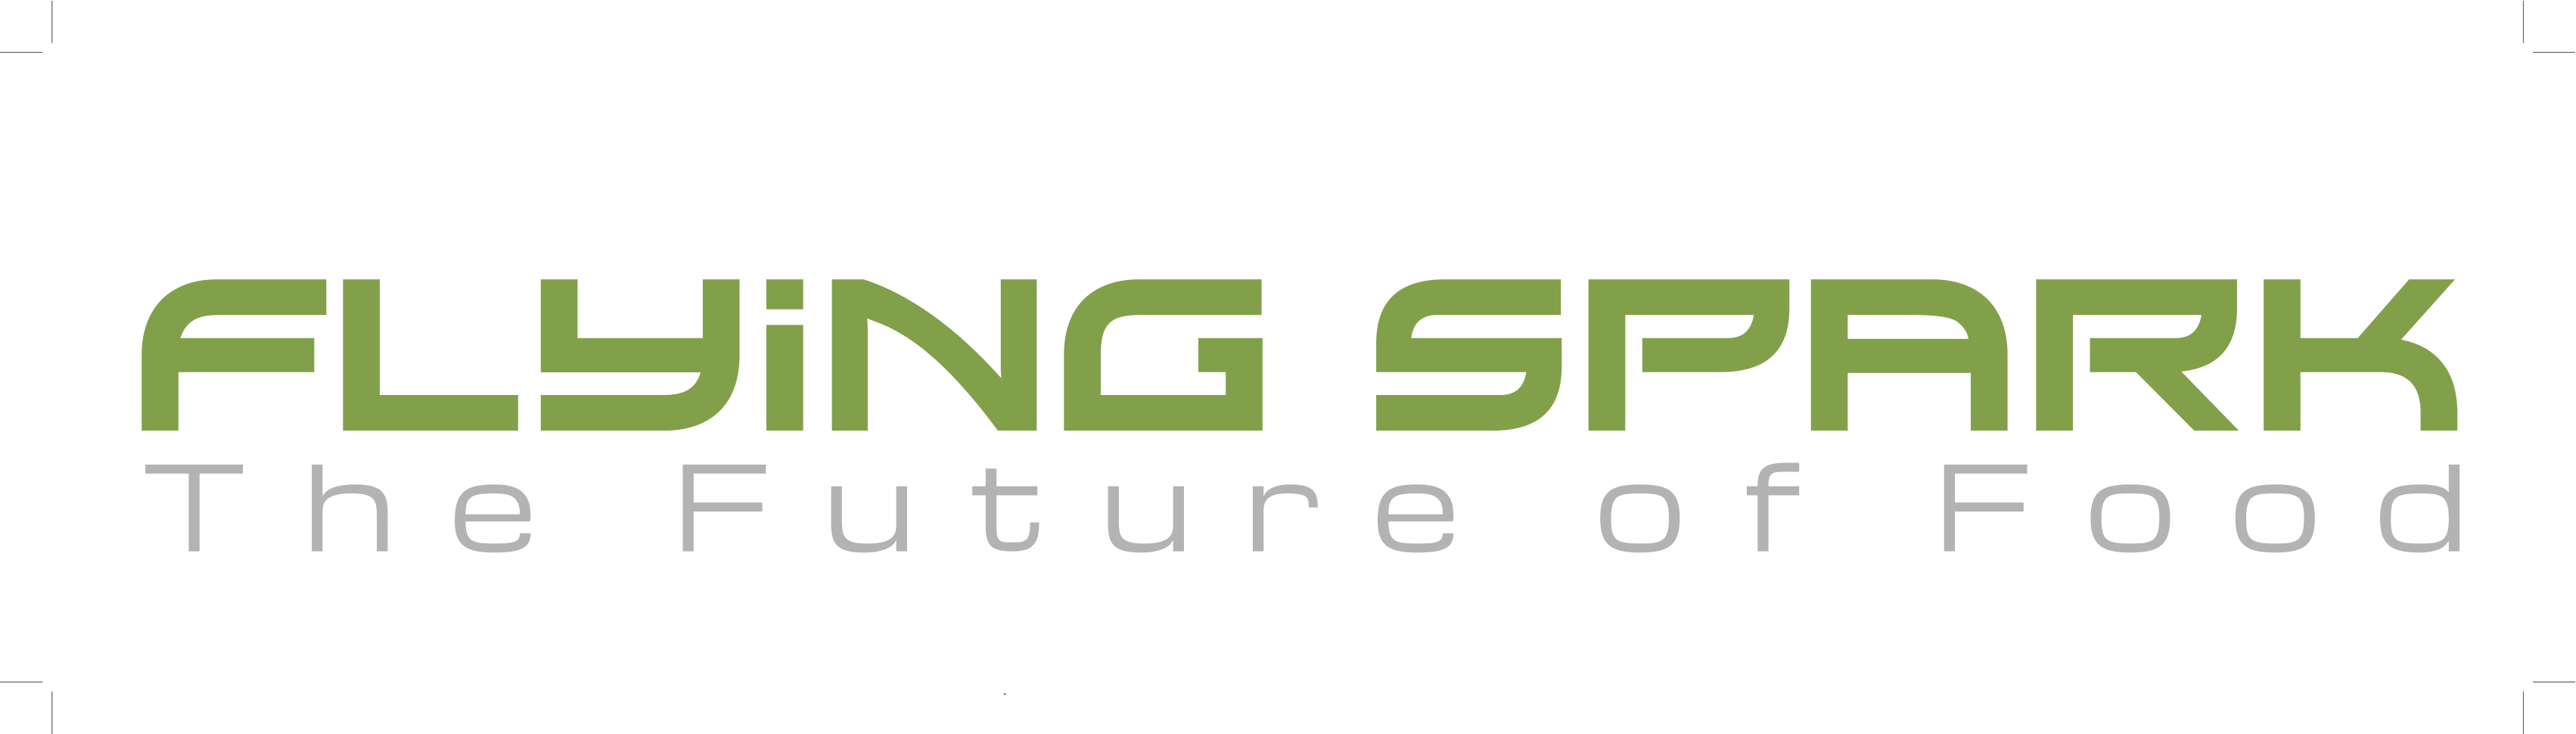 FlyingSpark logo